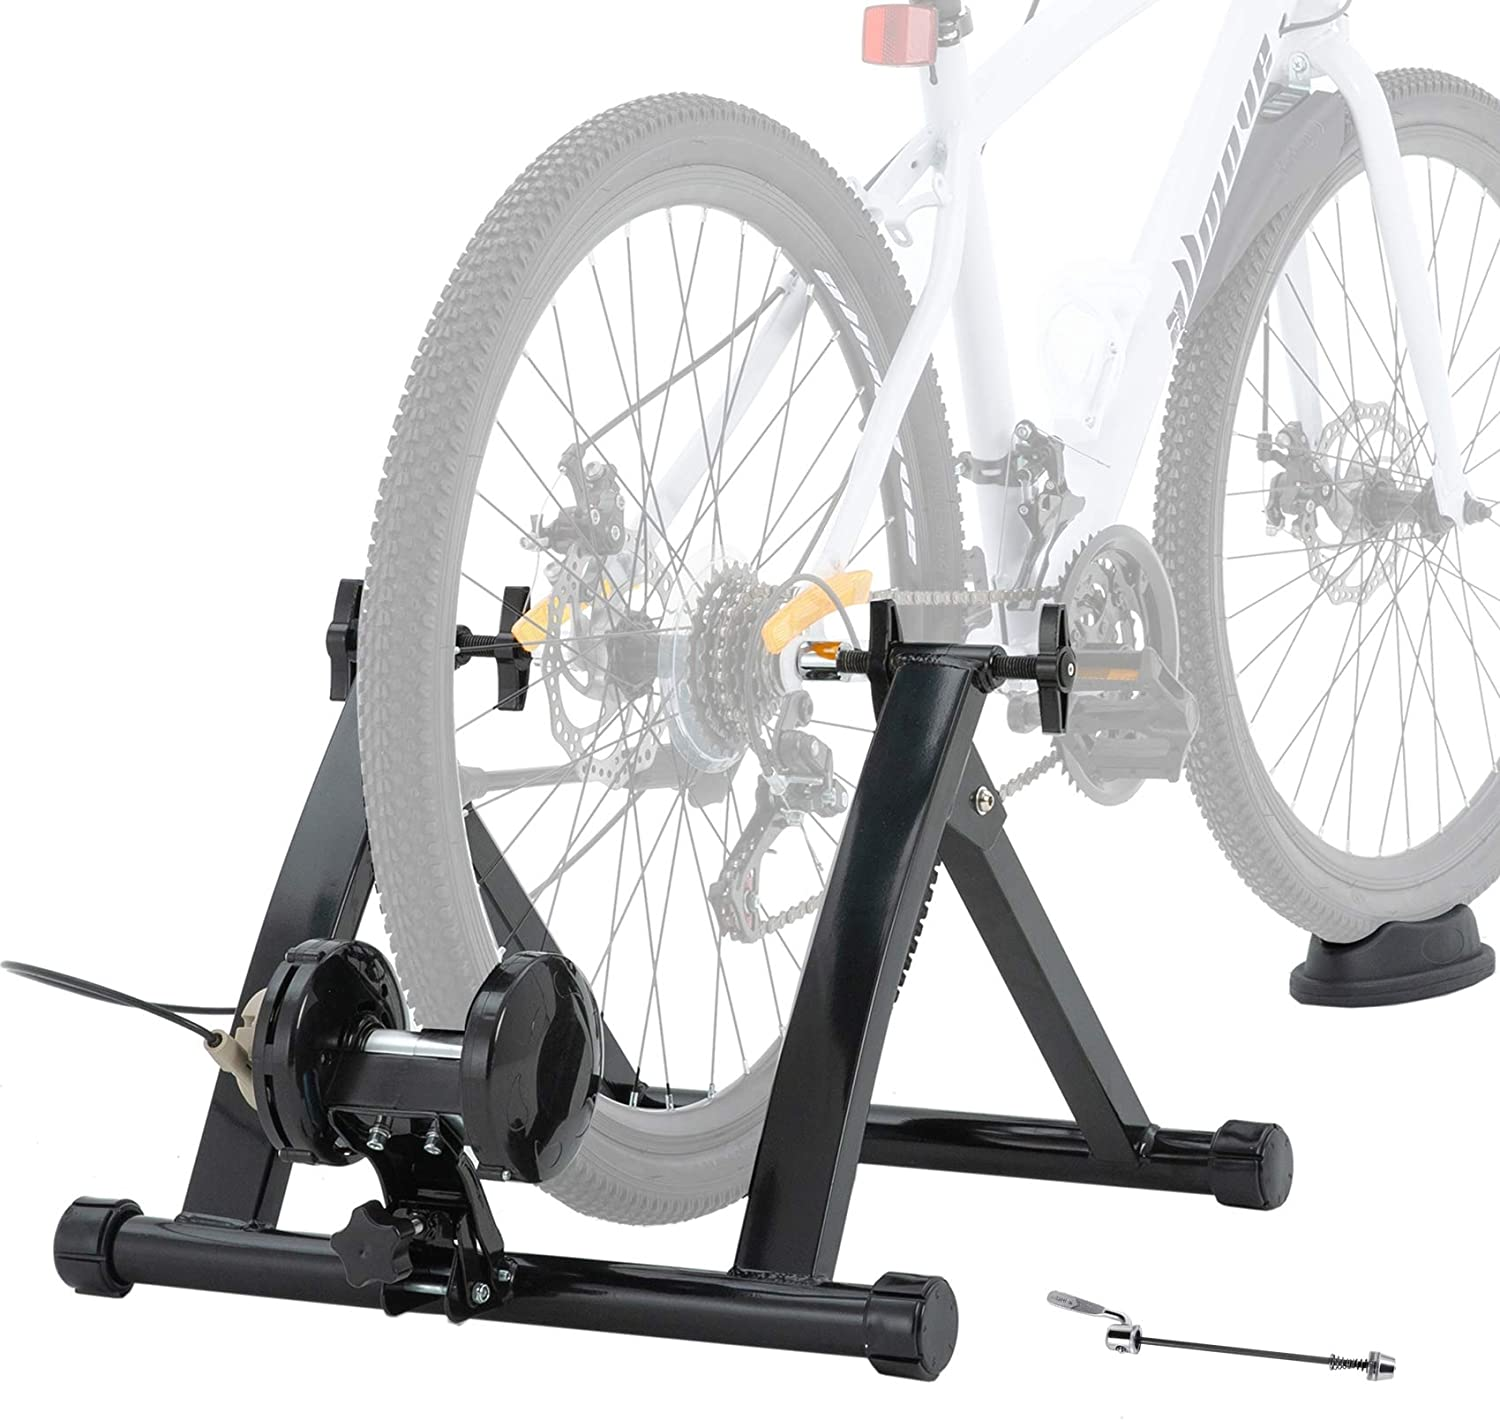 Walmann Bike Trainer Stand for Indoor Riding Magnetic Resistance Trainer 6 Variable Speed Level with Front Wheel Riser Block and Quick Release Stationary Bike Stand for Road & Mountain Bikes